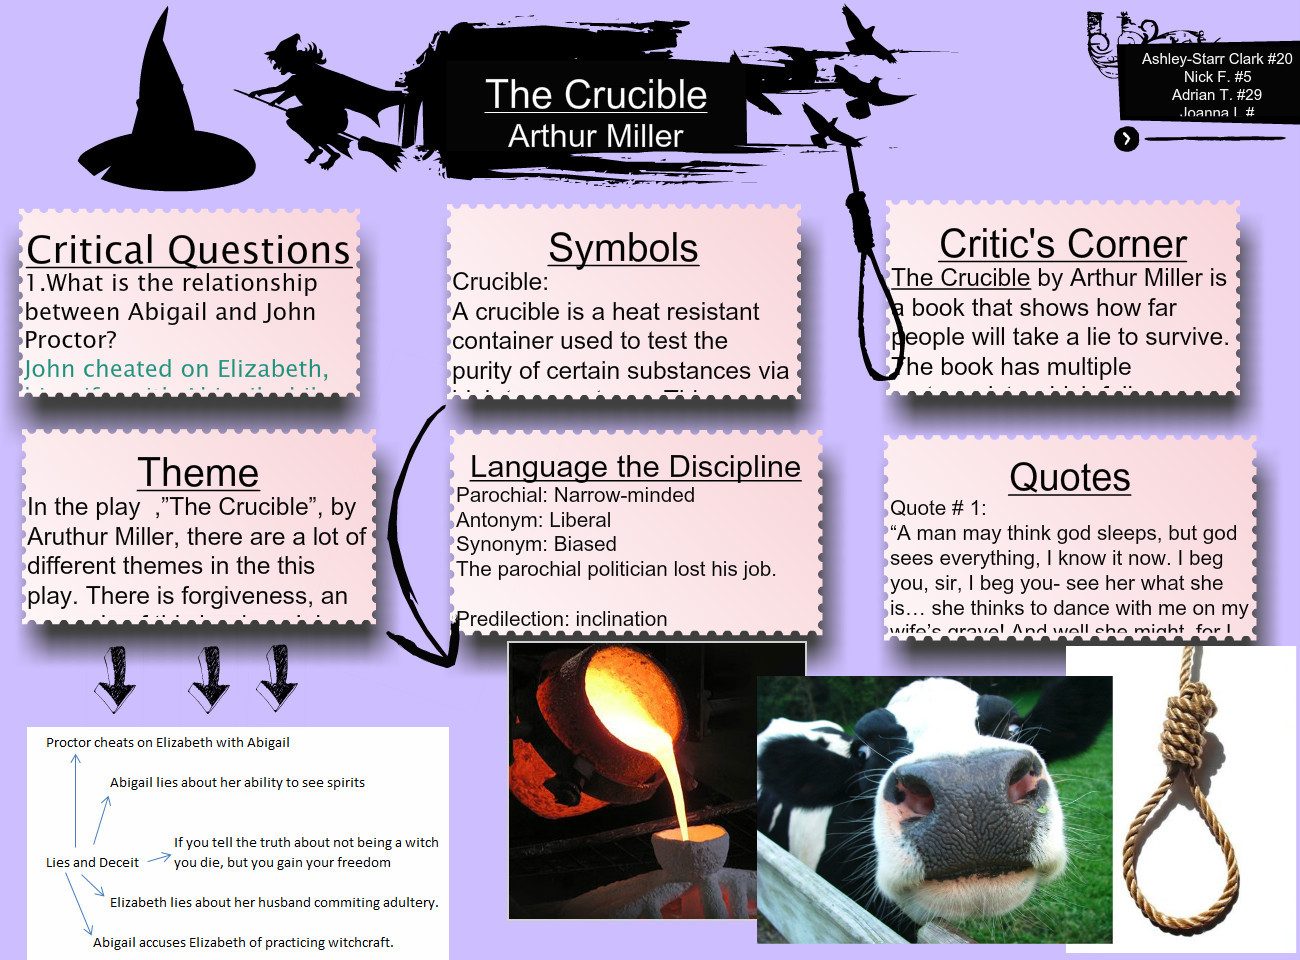 exploring the major themes in the crucible Other ways to study crucible themes for more elaboration on these themes and how they are expressed throughout the play, read my more in-depth article on the main themes in the crucible you can also read my article on mccarthyism and the red scare as they relate to the play to get more information on the context in which the.